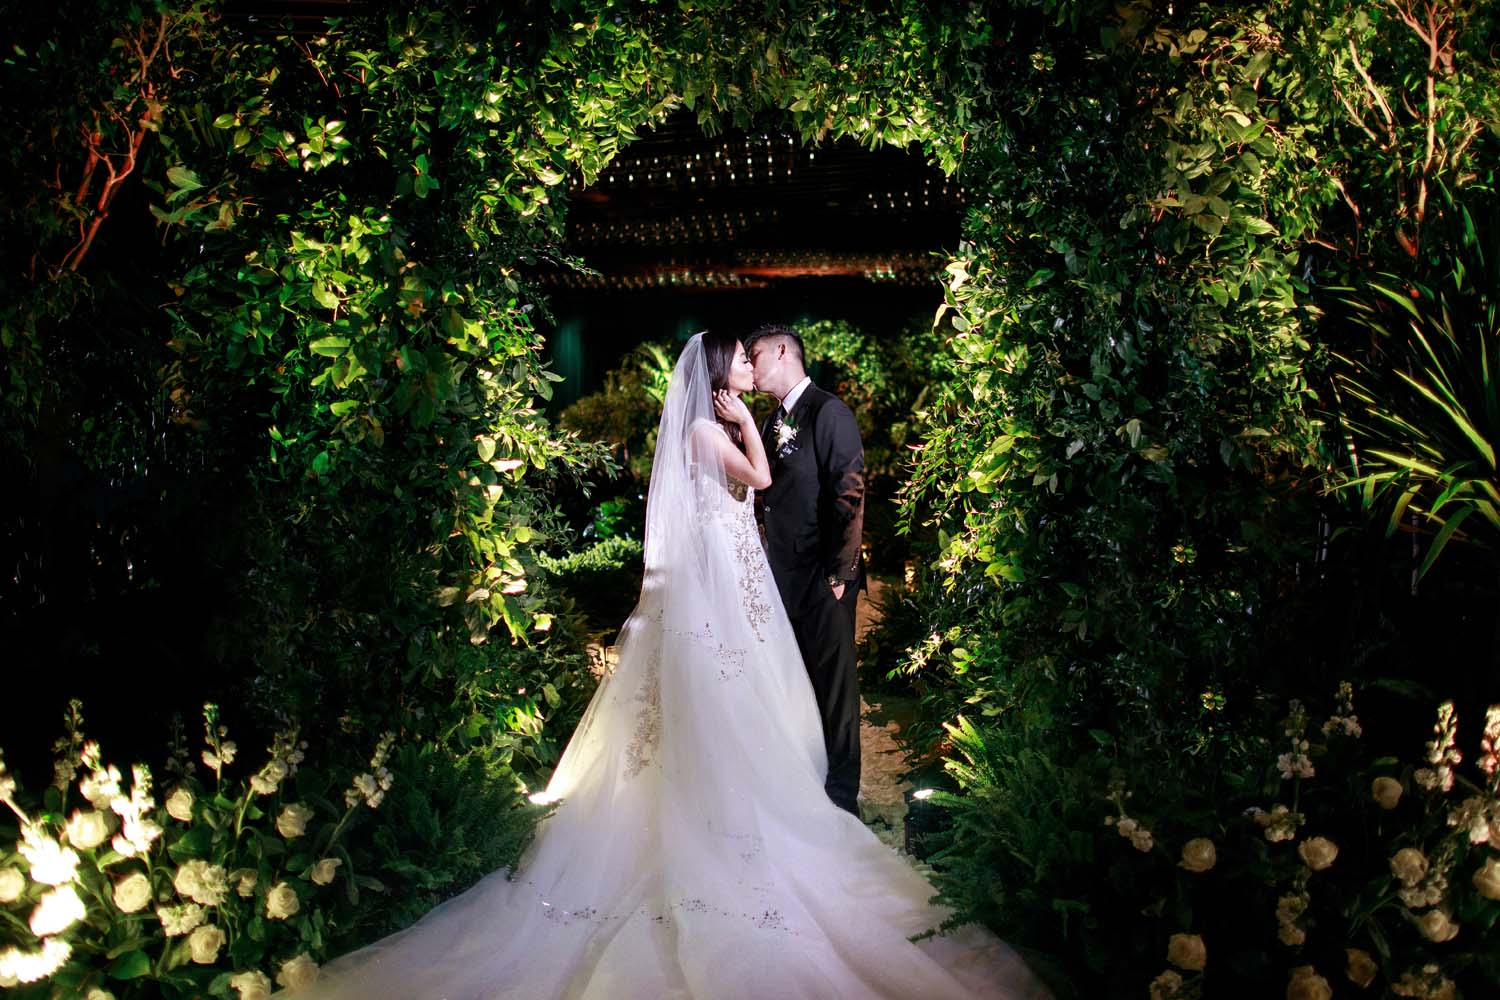 Bride and groom kissing in their ceremony space. Luxury Las Vegas Wedding Planner Andrea Eppolito. www.andreaeppolitoevents.com. Photo by Rene Zadori.